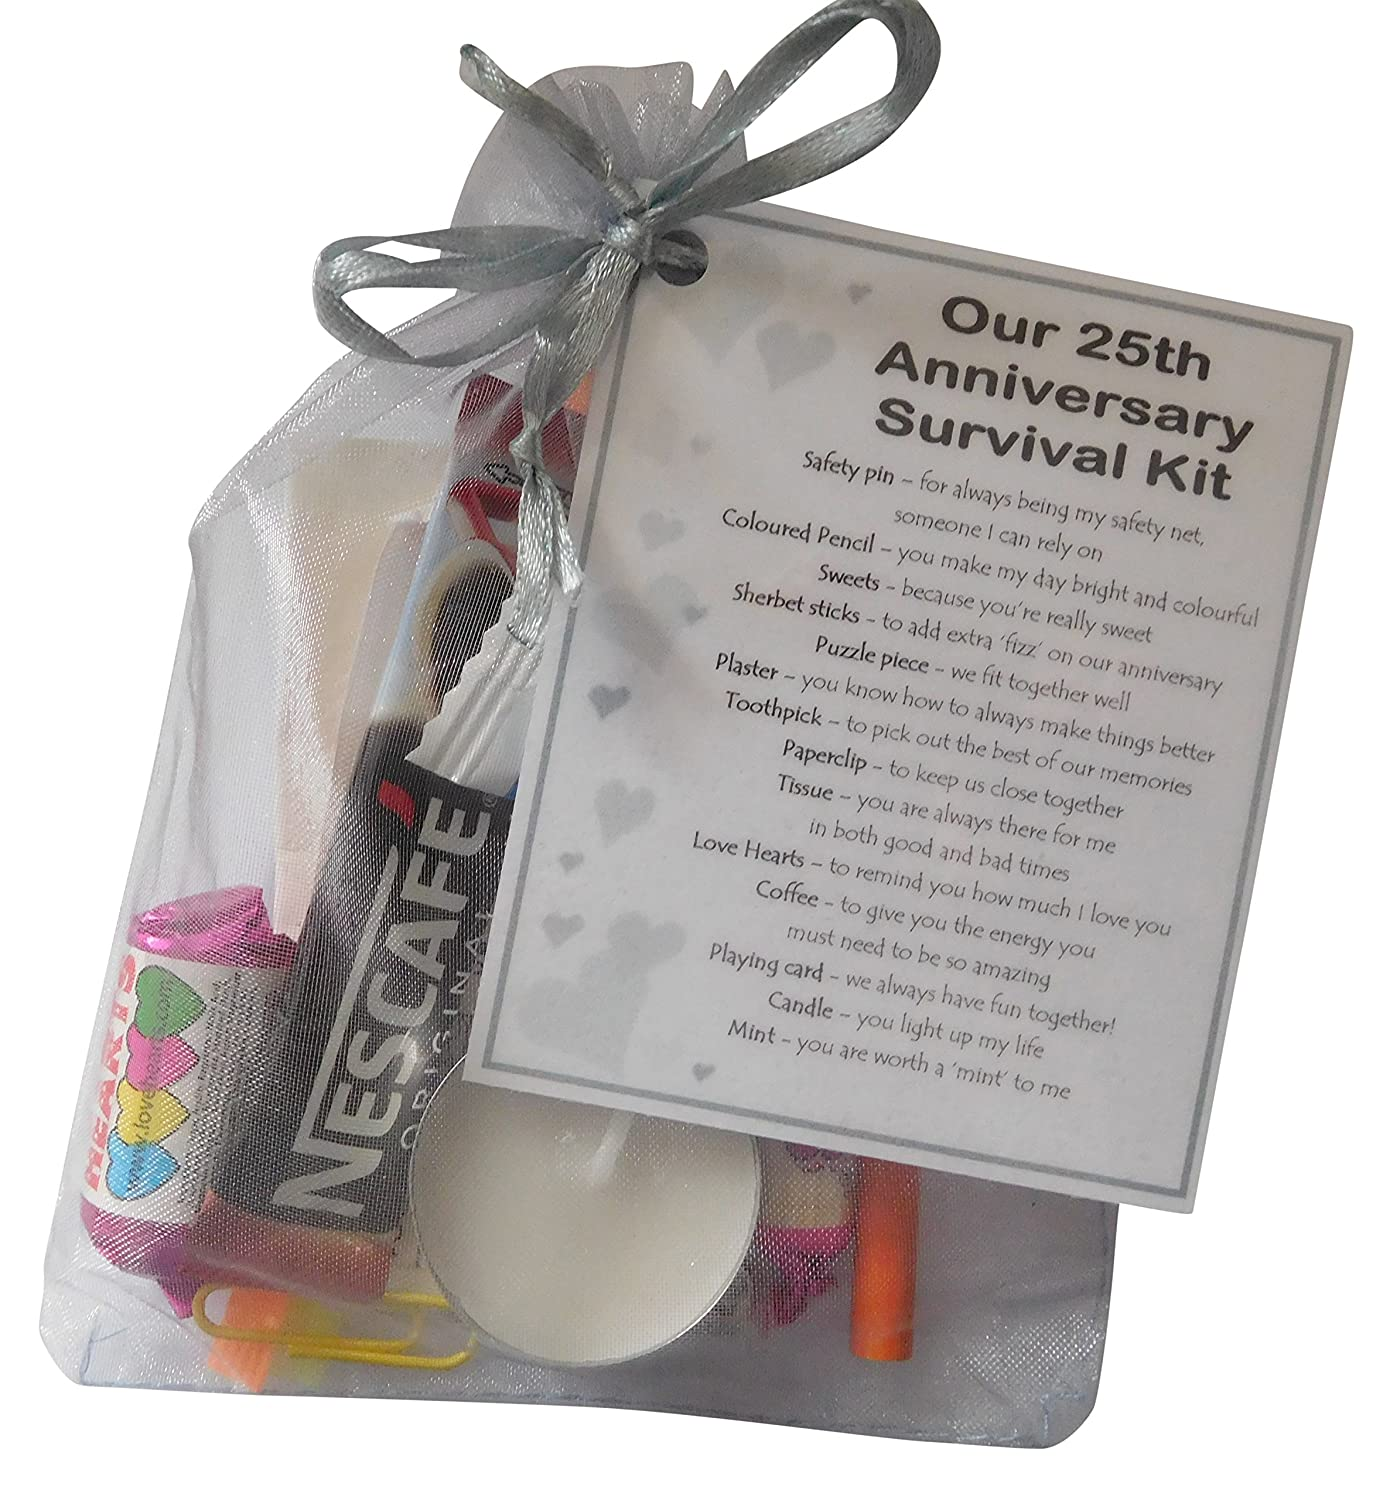 SMILE GIFTS UK Silver 25th Anniversary Survival Kit Gift (Great novelty present for silver anniversary or wedding anniversary for husband, ...